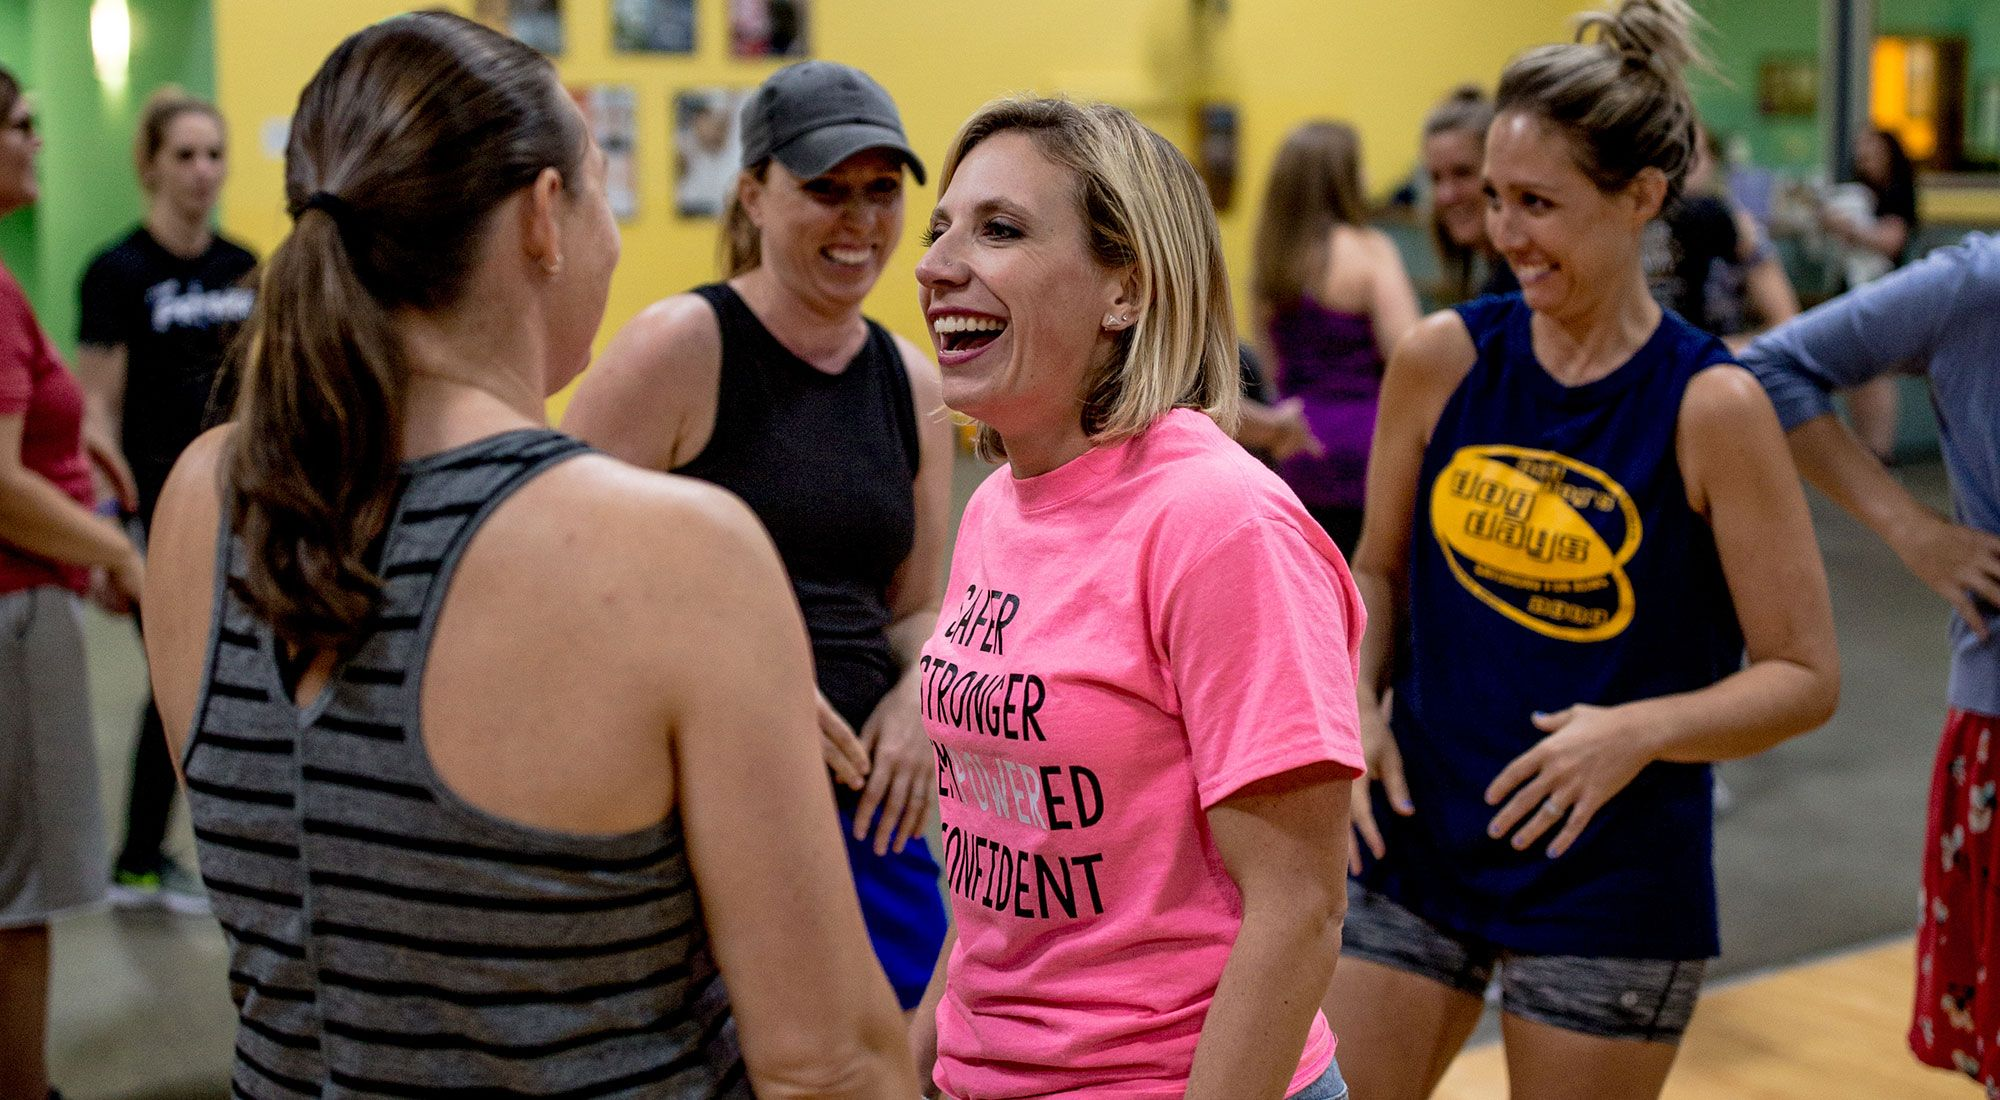 Carrie Mugridge Training Runners for Self Defense - Running and Safety